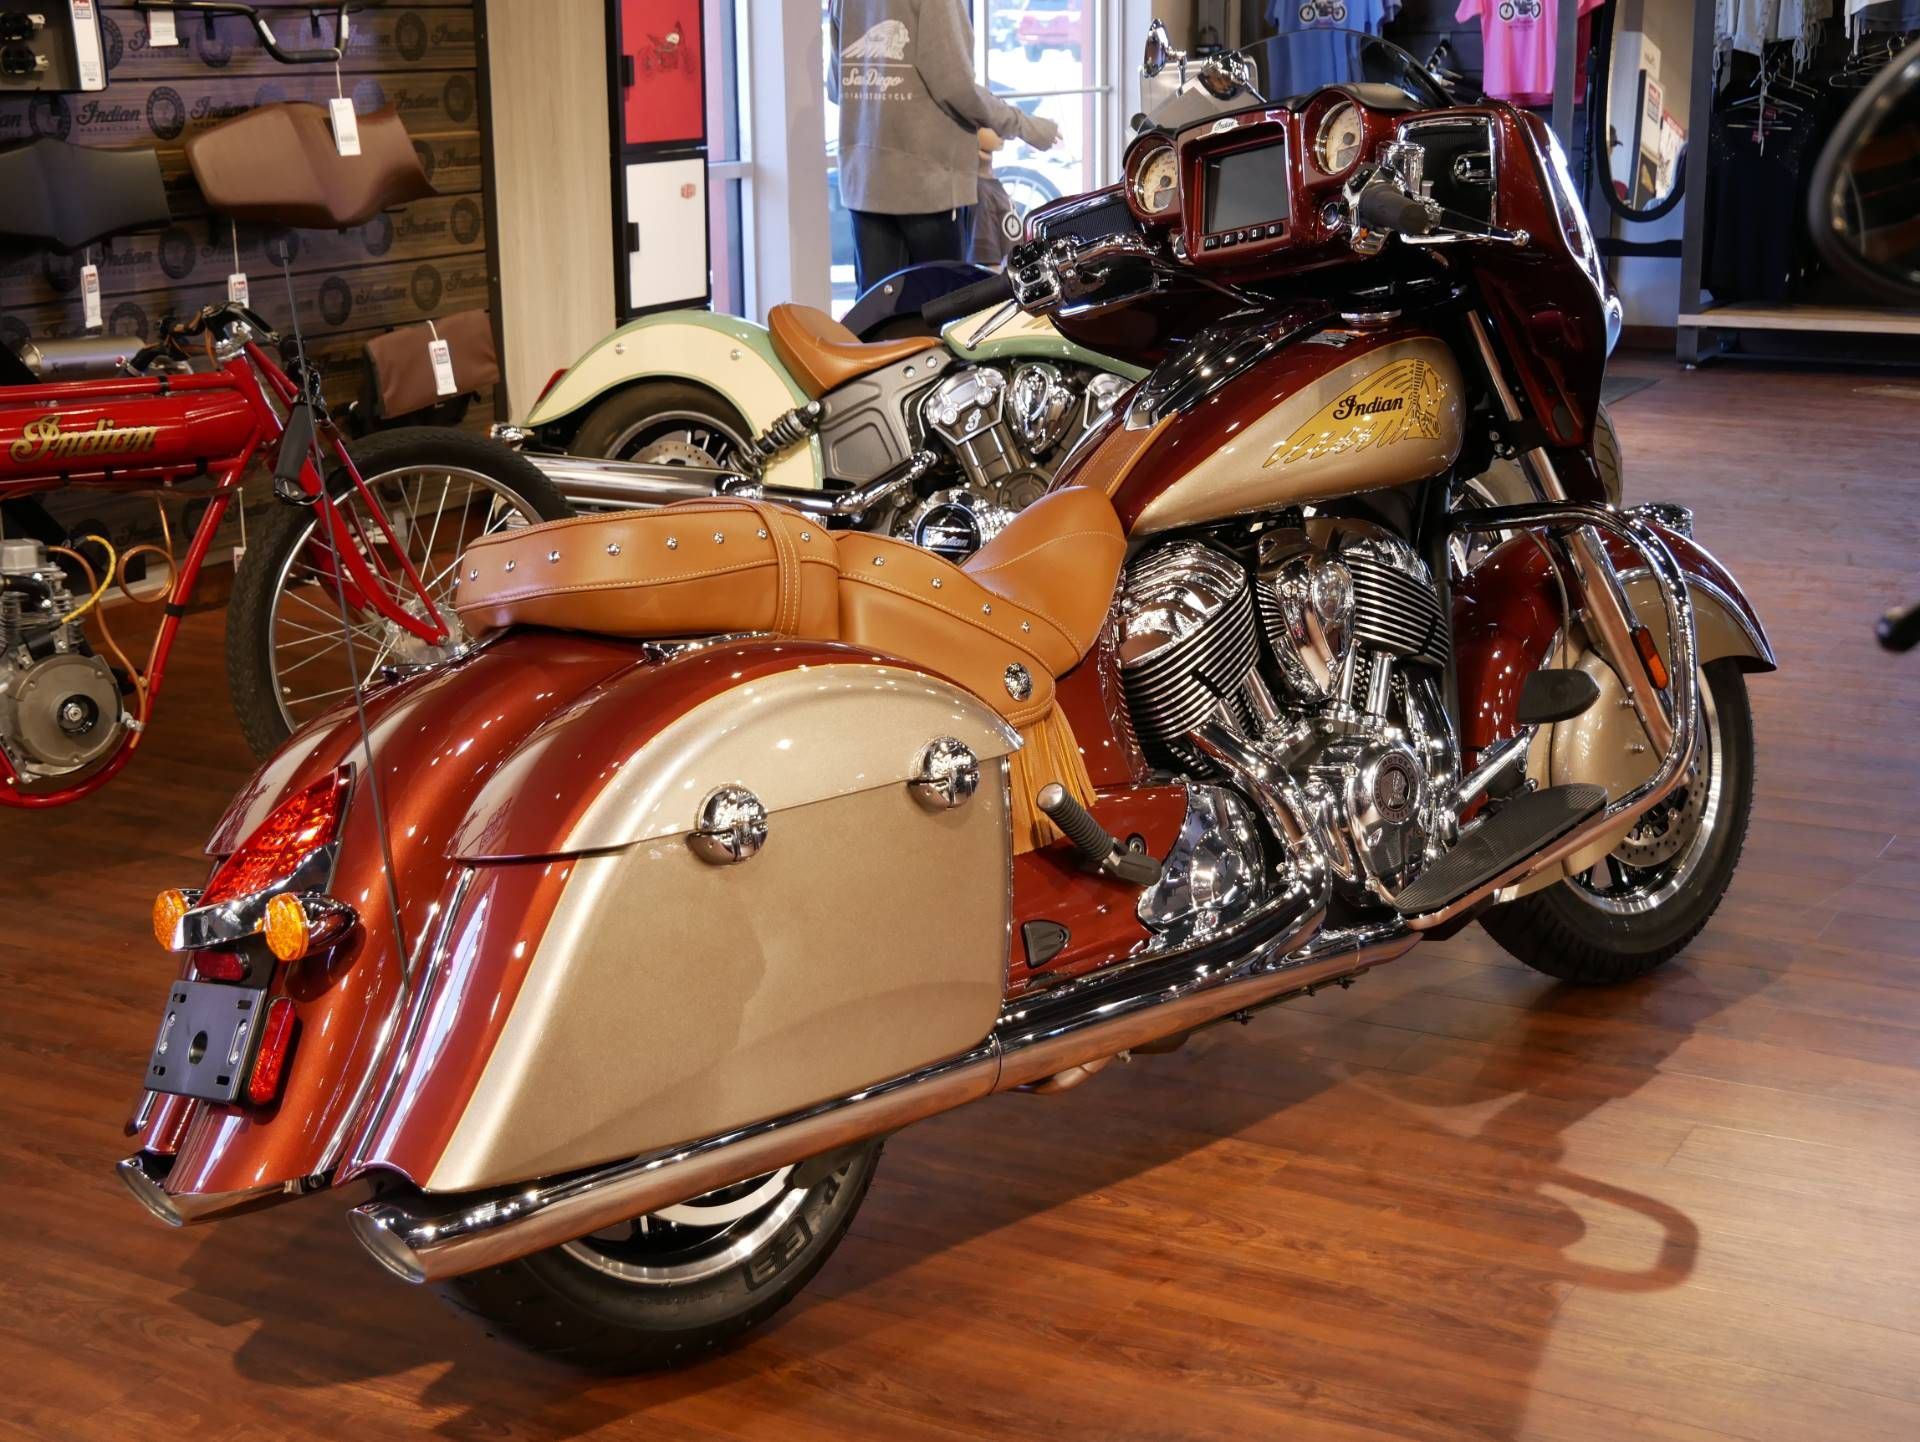 2019 Indian Chieftain® Classic Icon Series in San Diego, California - Photo 14